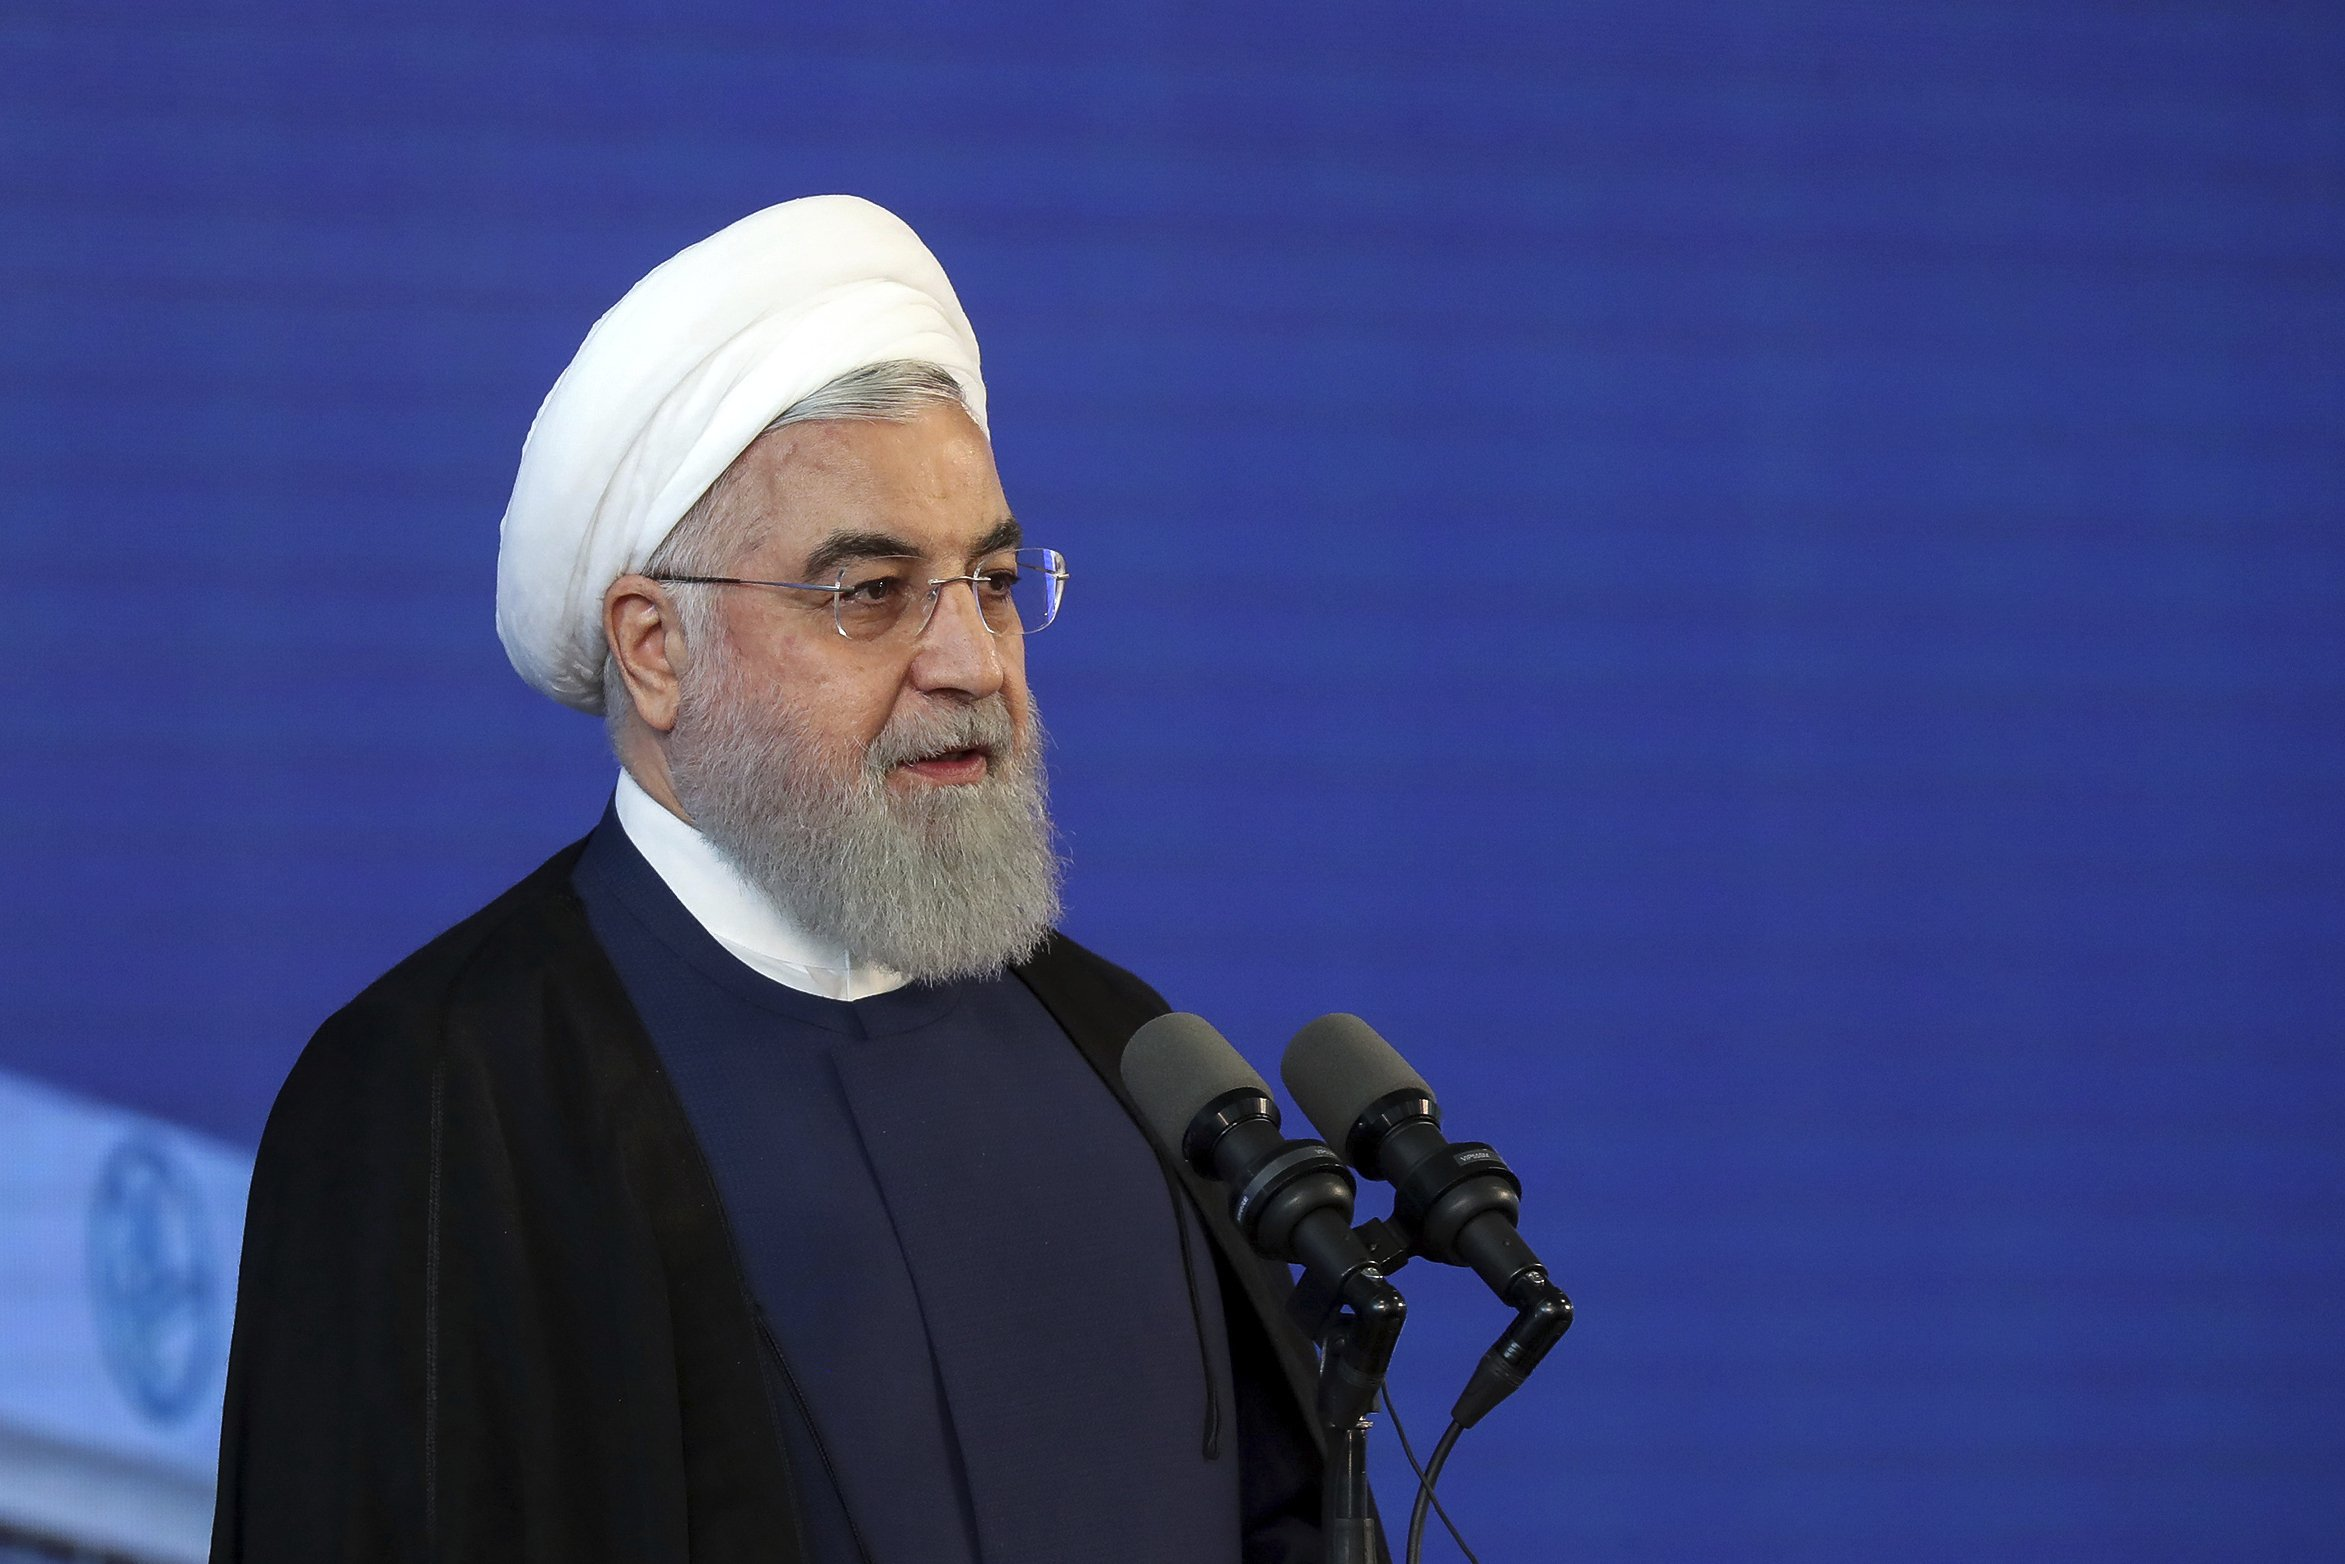 The Latest: Iran's Rouhani disparages Trump over sanctions